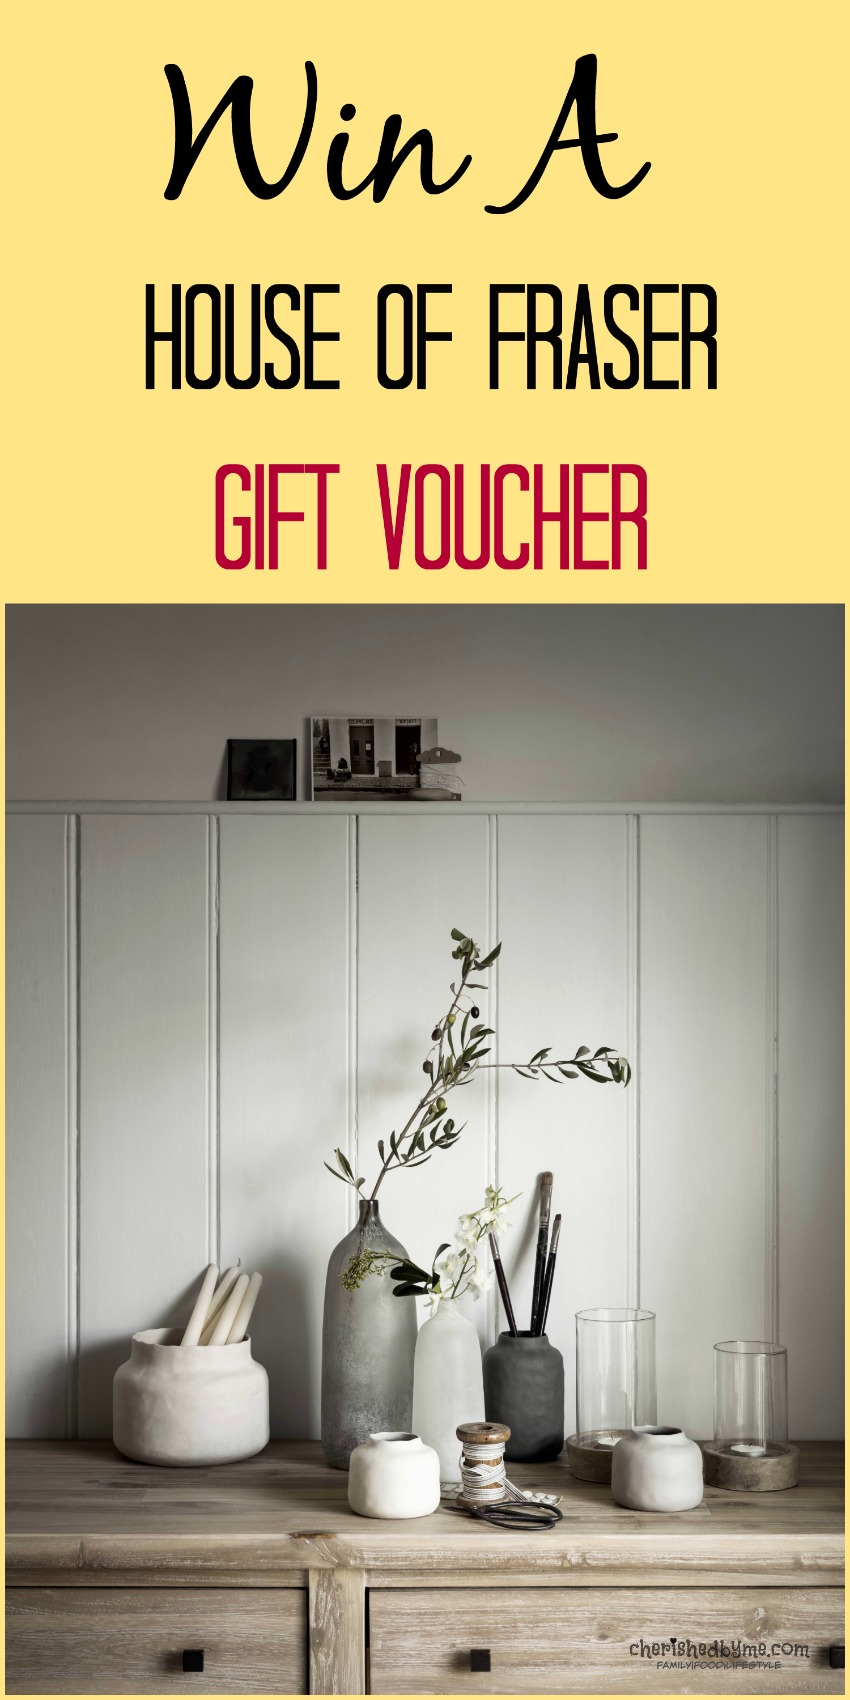 Head over to Cherished By Me for the chance to win a House of Fraser gift voucher to spend online or in store!